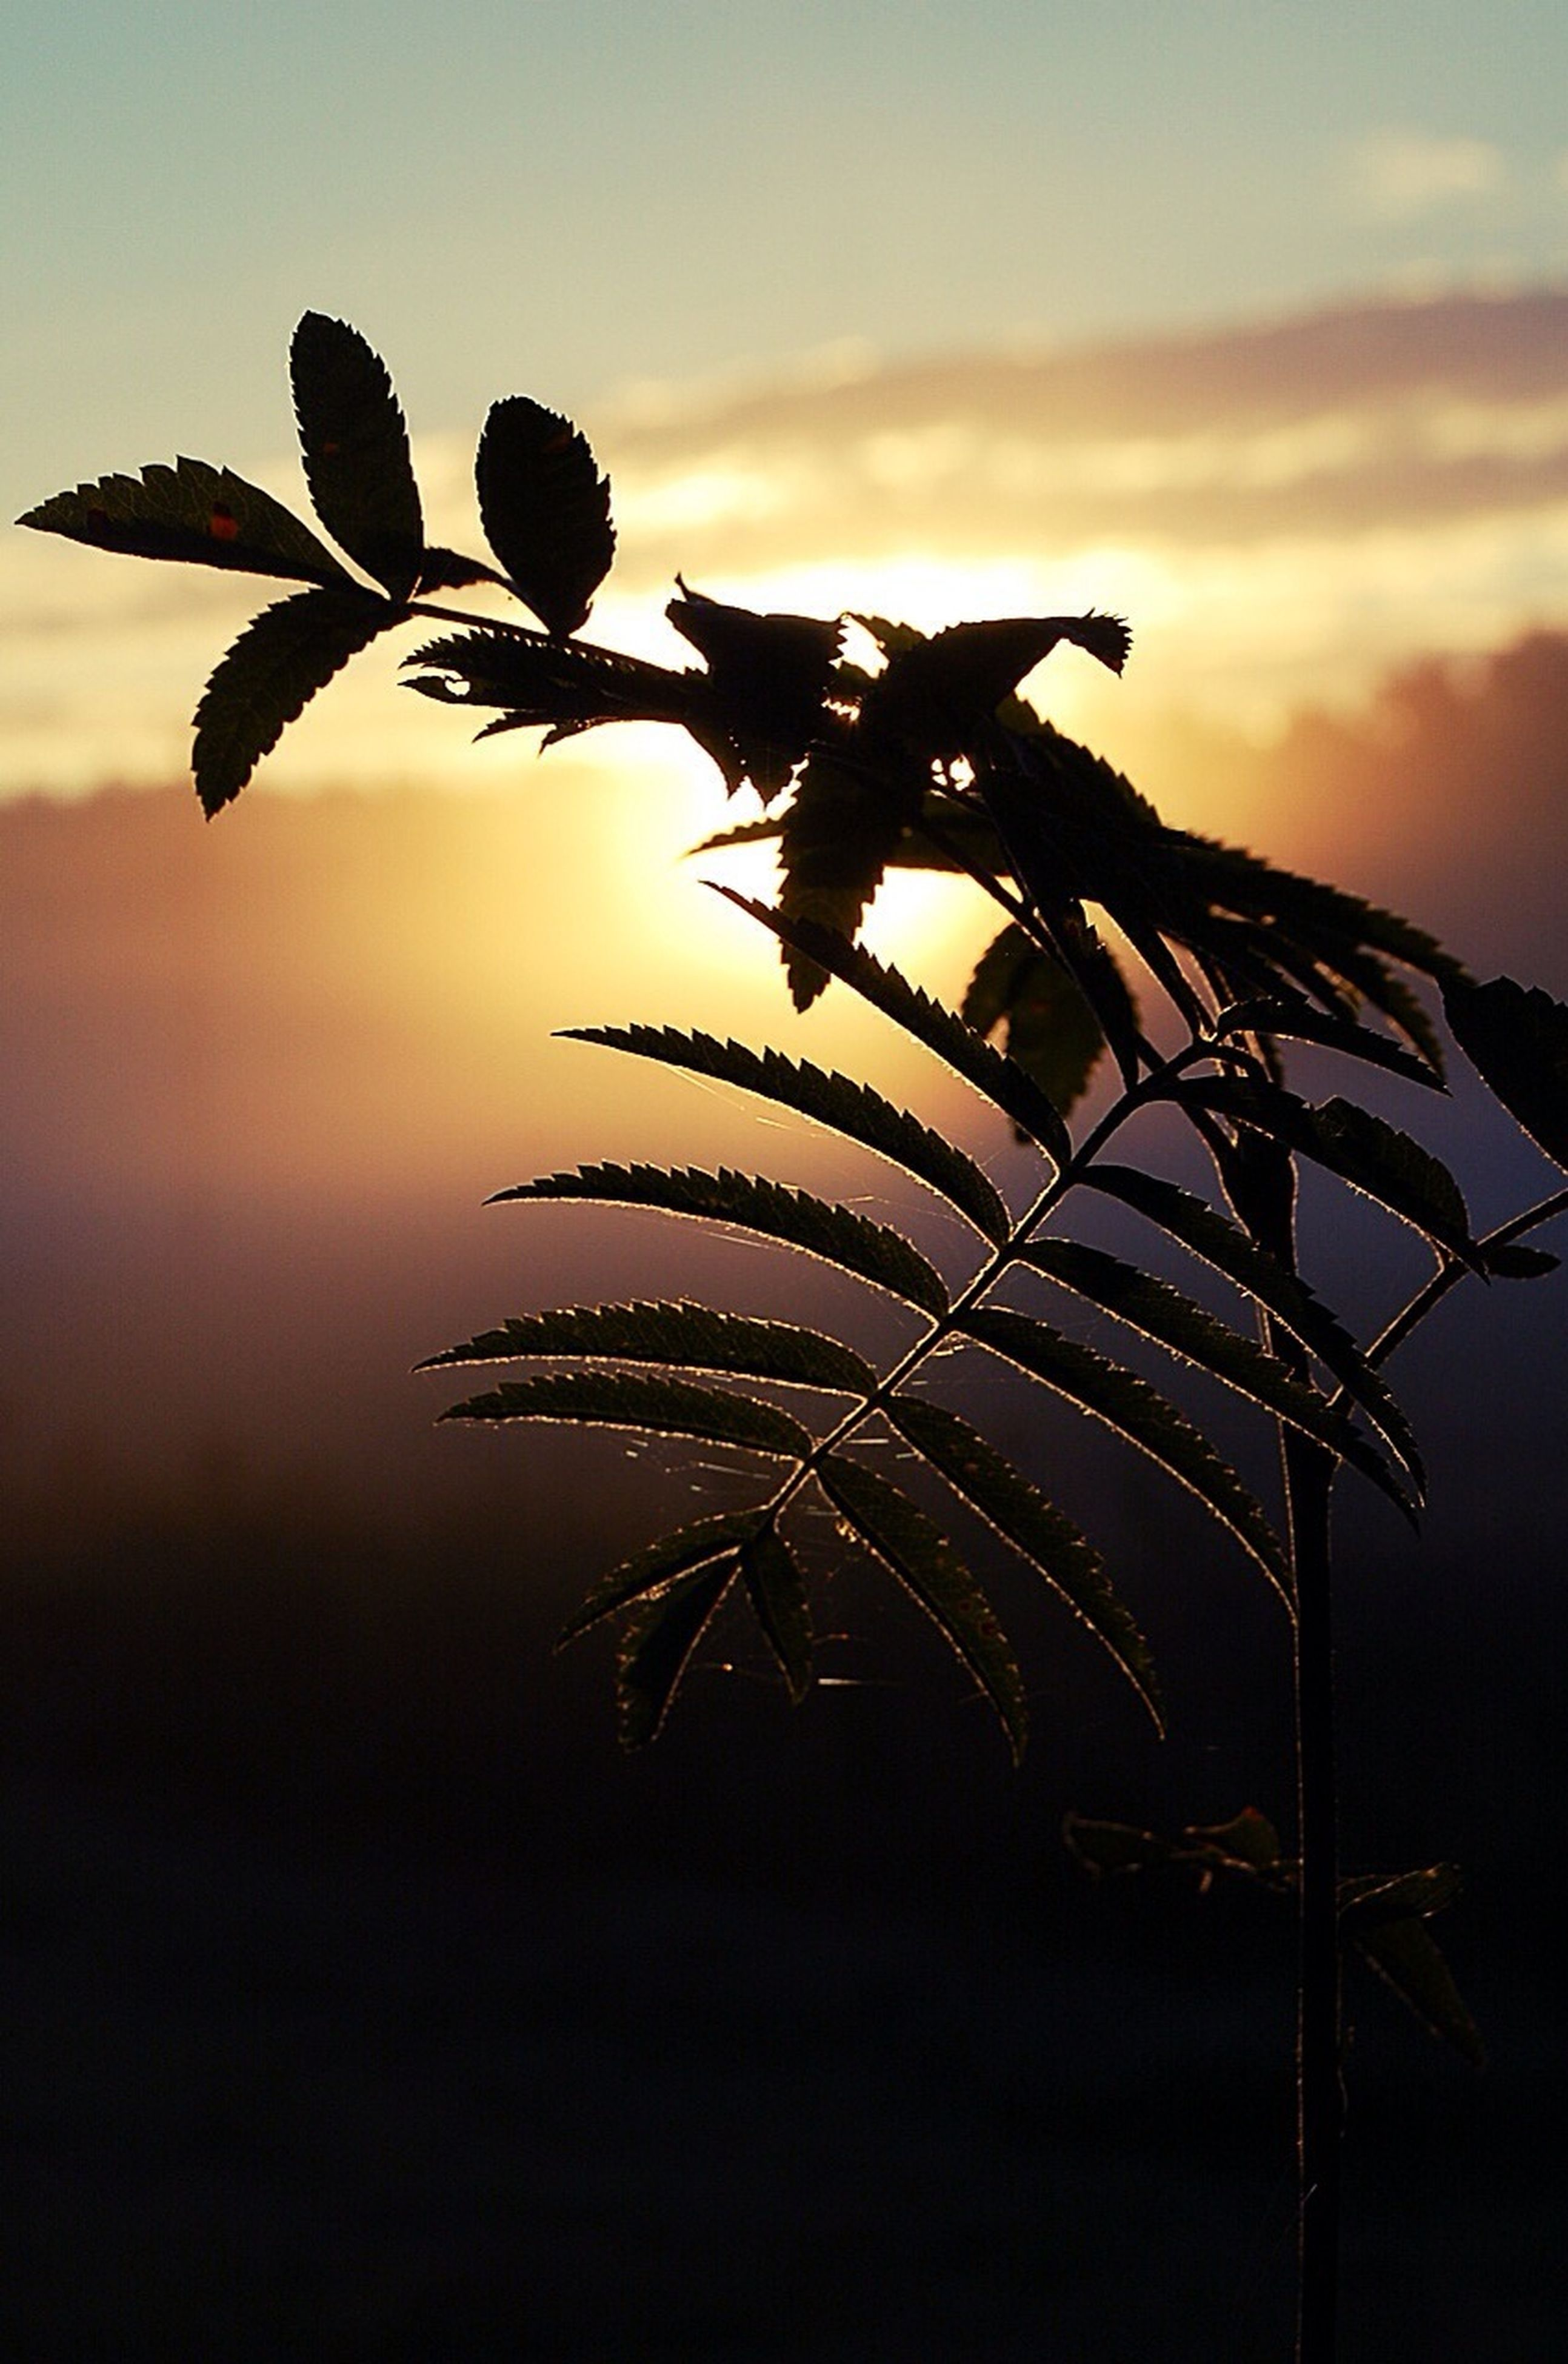 low angle view, silhouette, plant, close-up, growth, sky, nature, clear sky, dusk, outdoors, no people, focus on foreground, night, tranquility, copy space, beauty in nature, sunset, stem, leaf